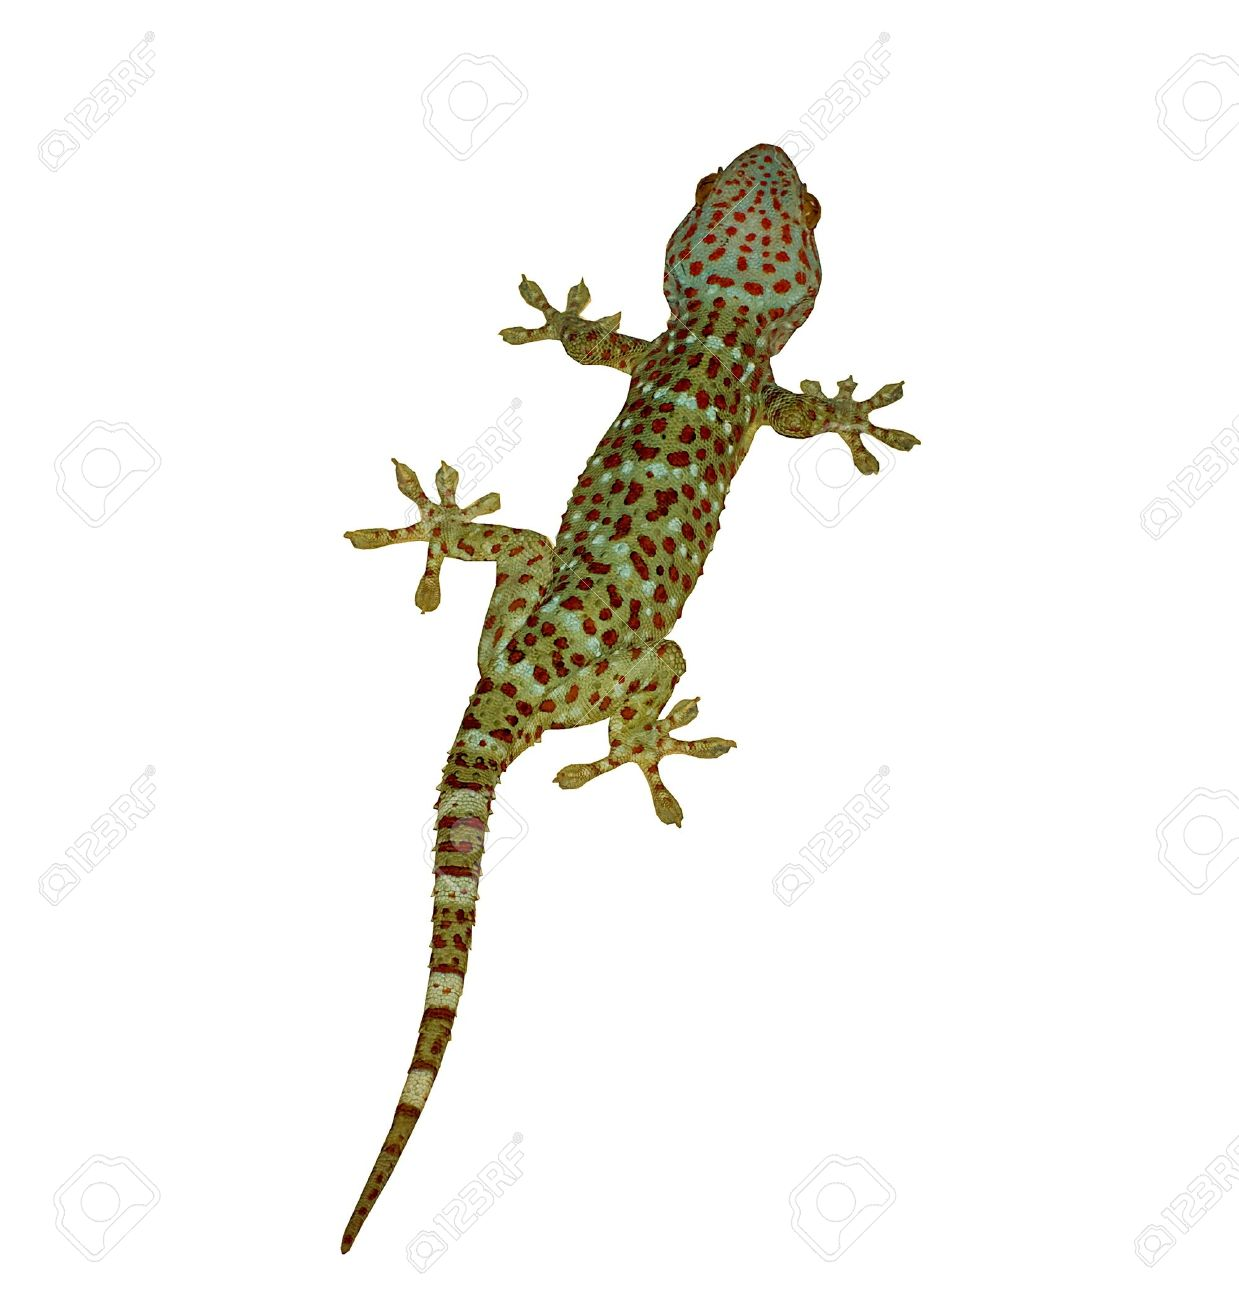 gecko stock photos royalty free gecko images and pictures